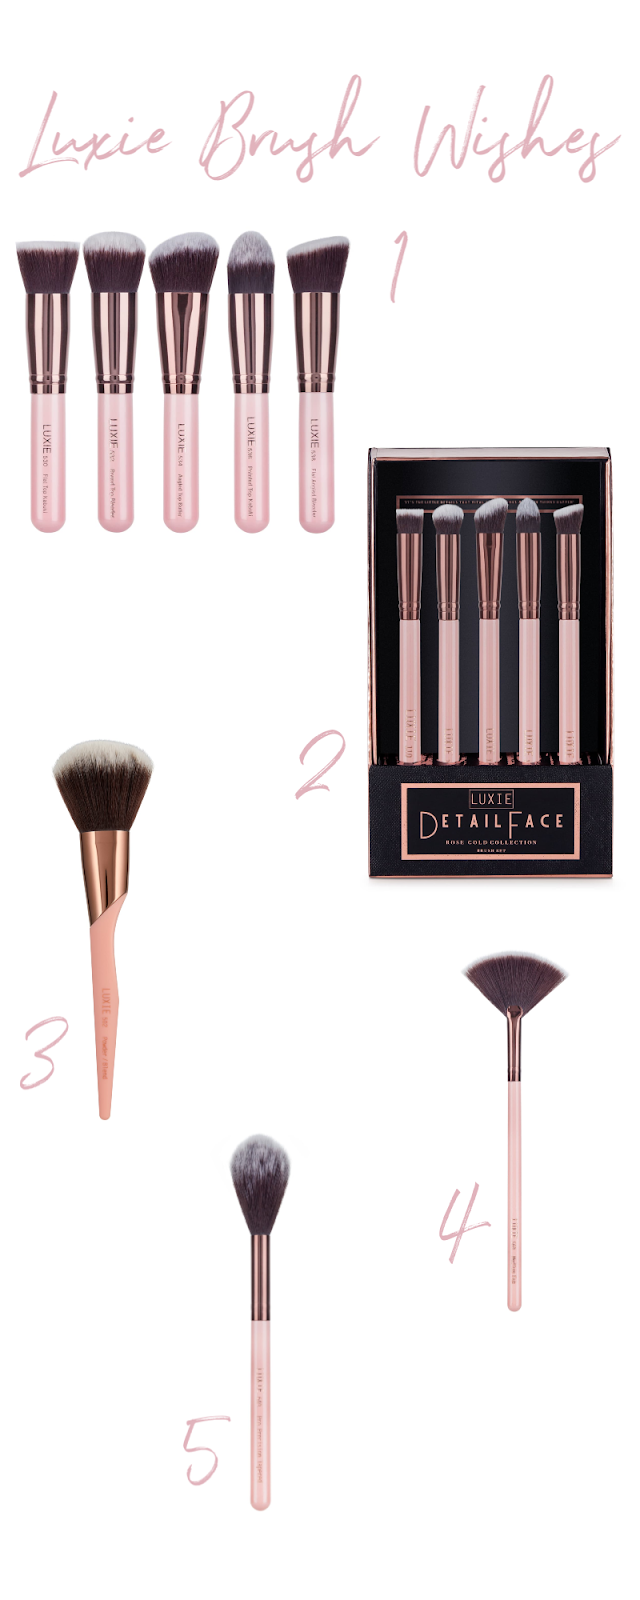 New Luxie Beauty Makeup Brushes for Home and Travel | And a Giveaway! Luxie Brush Wishes